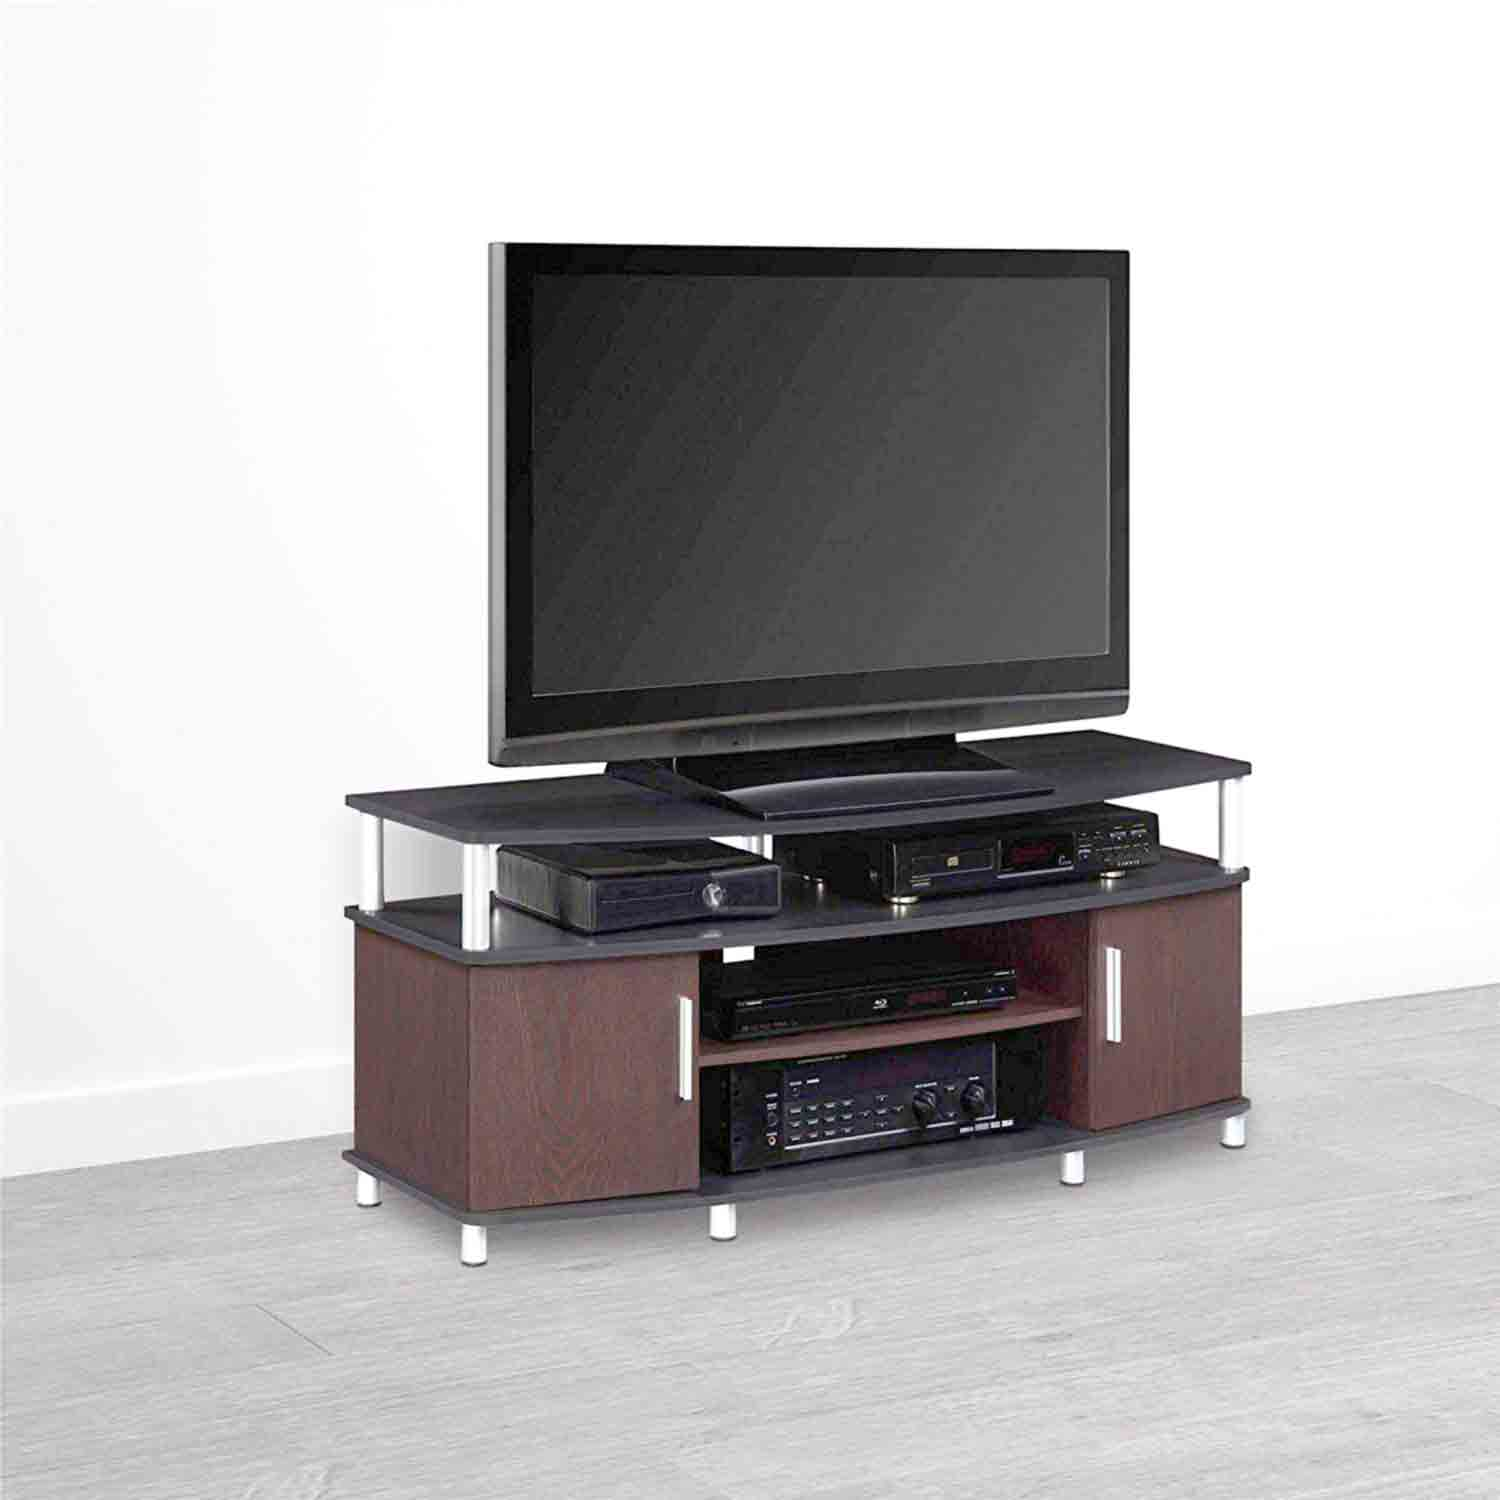 best-gifts-for-scorpio-tv-stand